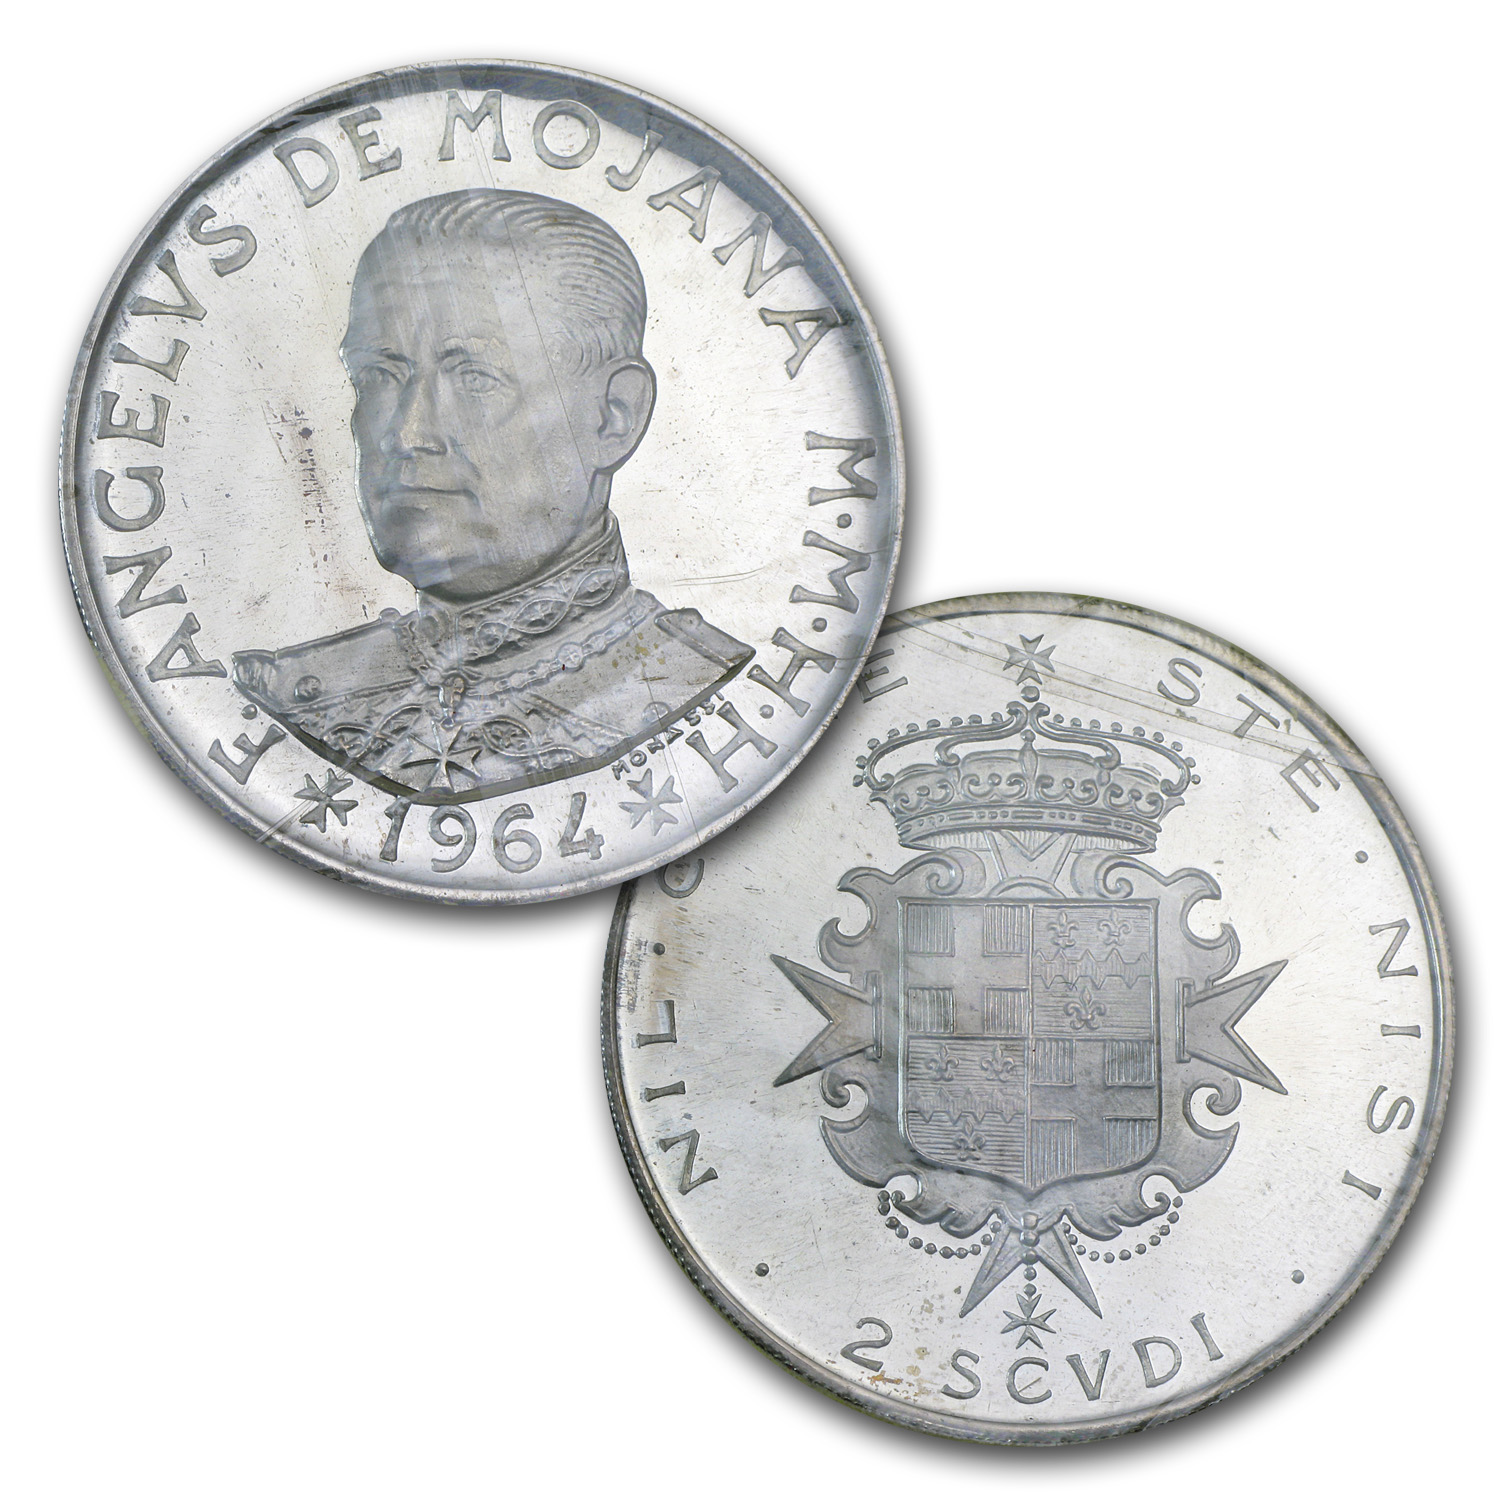 1964 Malta 2-Coin Silver Proof Set